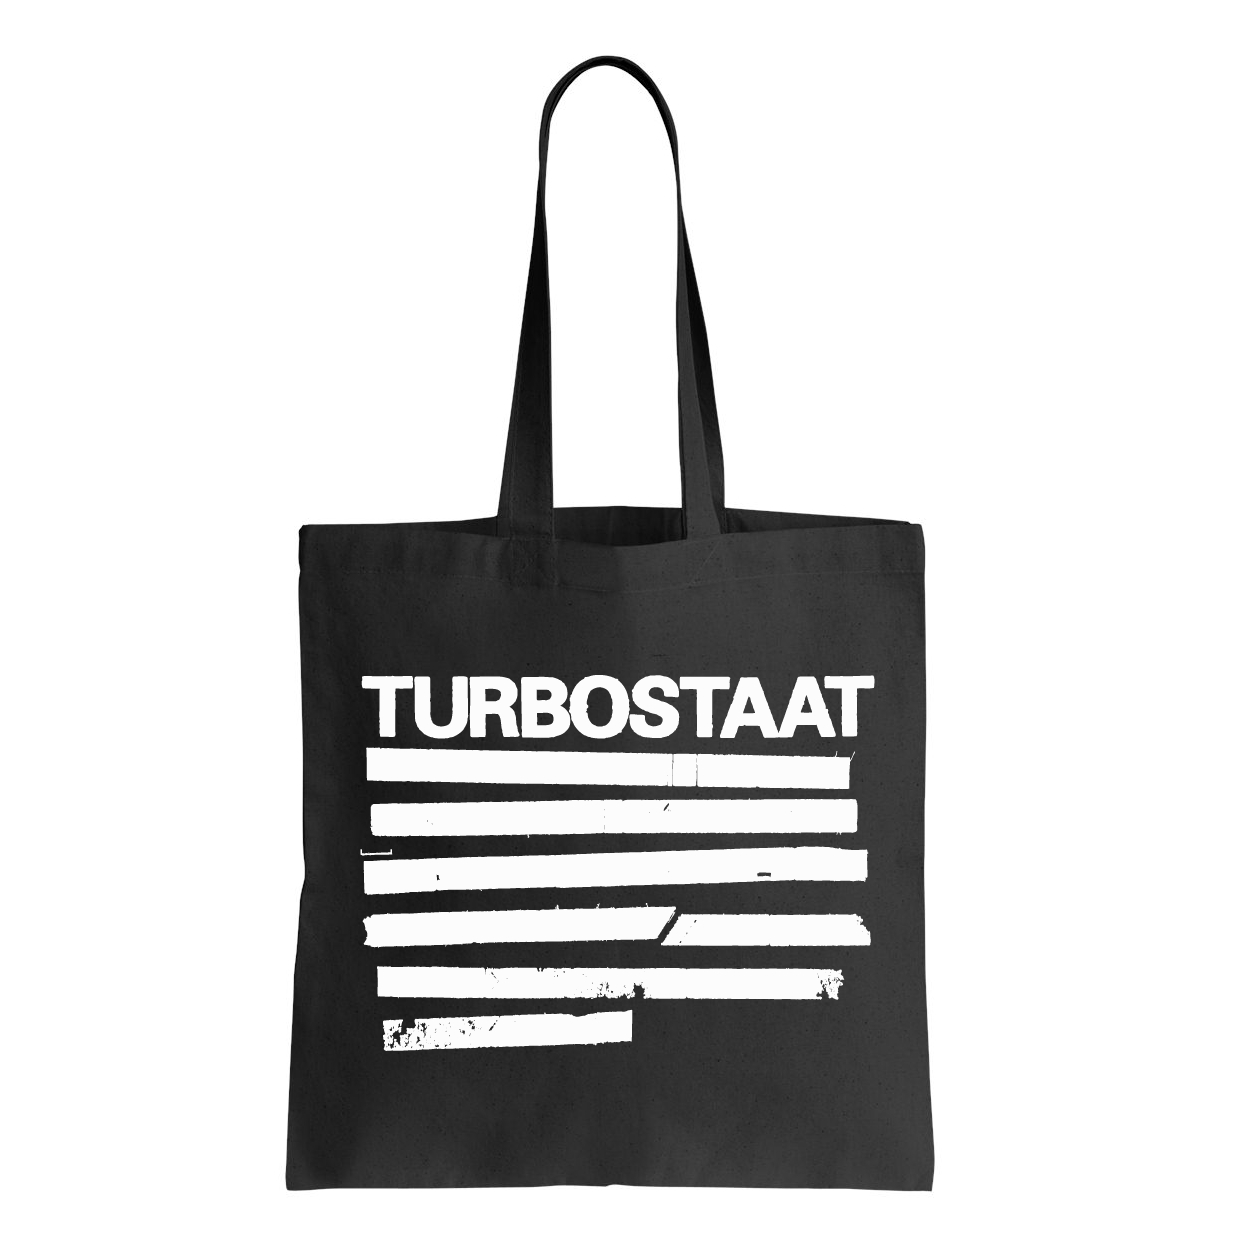 Turbostaat Balken Beutel Bag black